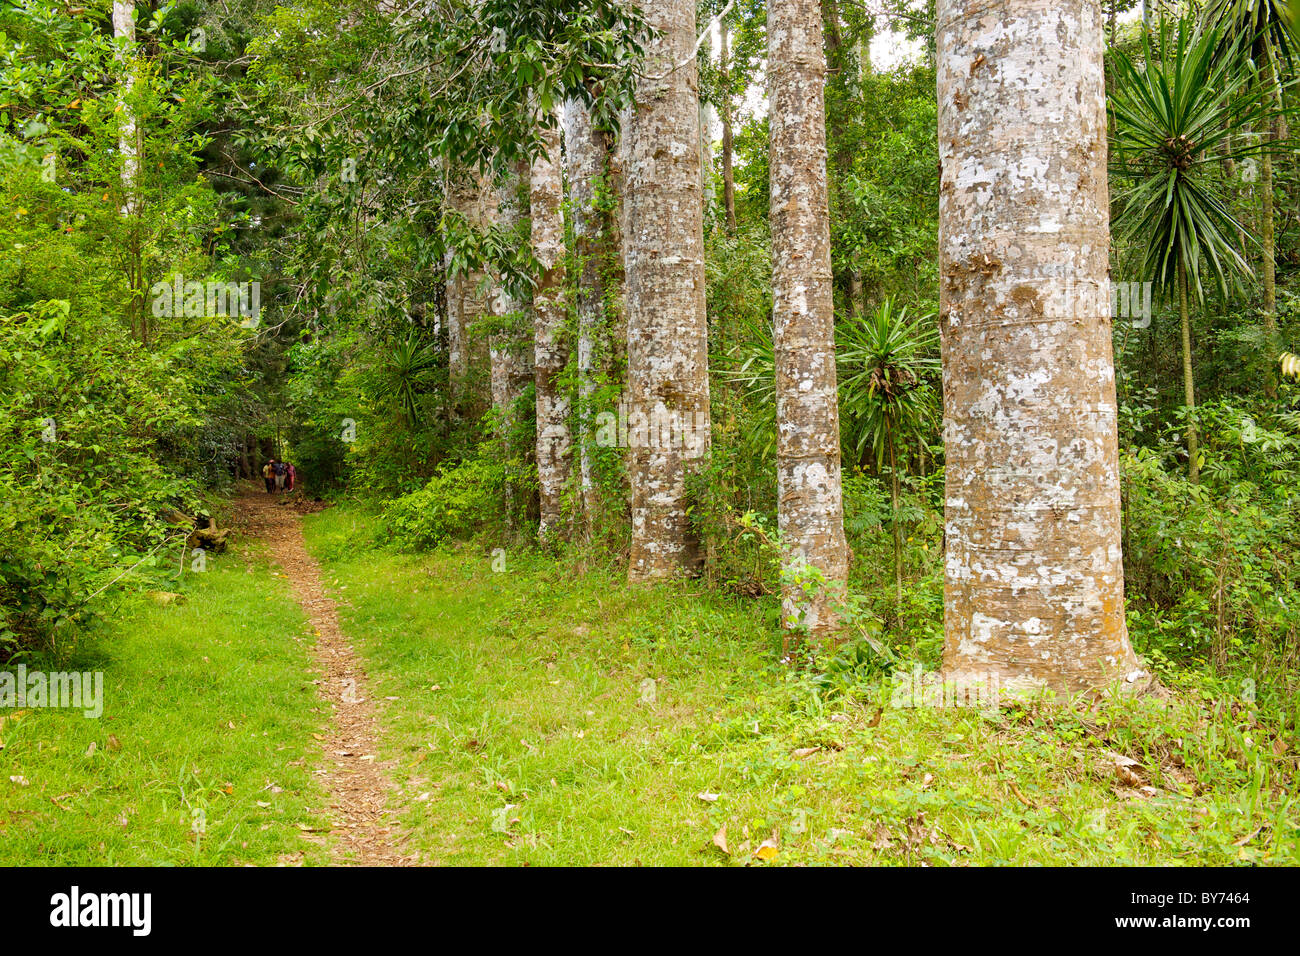 Forest trail in Montagne D'Ambre National Park in northern Madagascar. - Stock Image